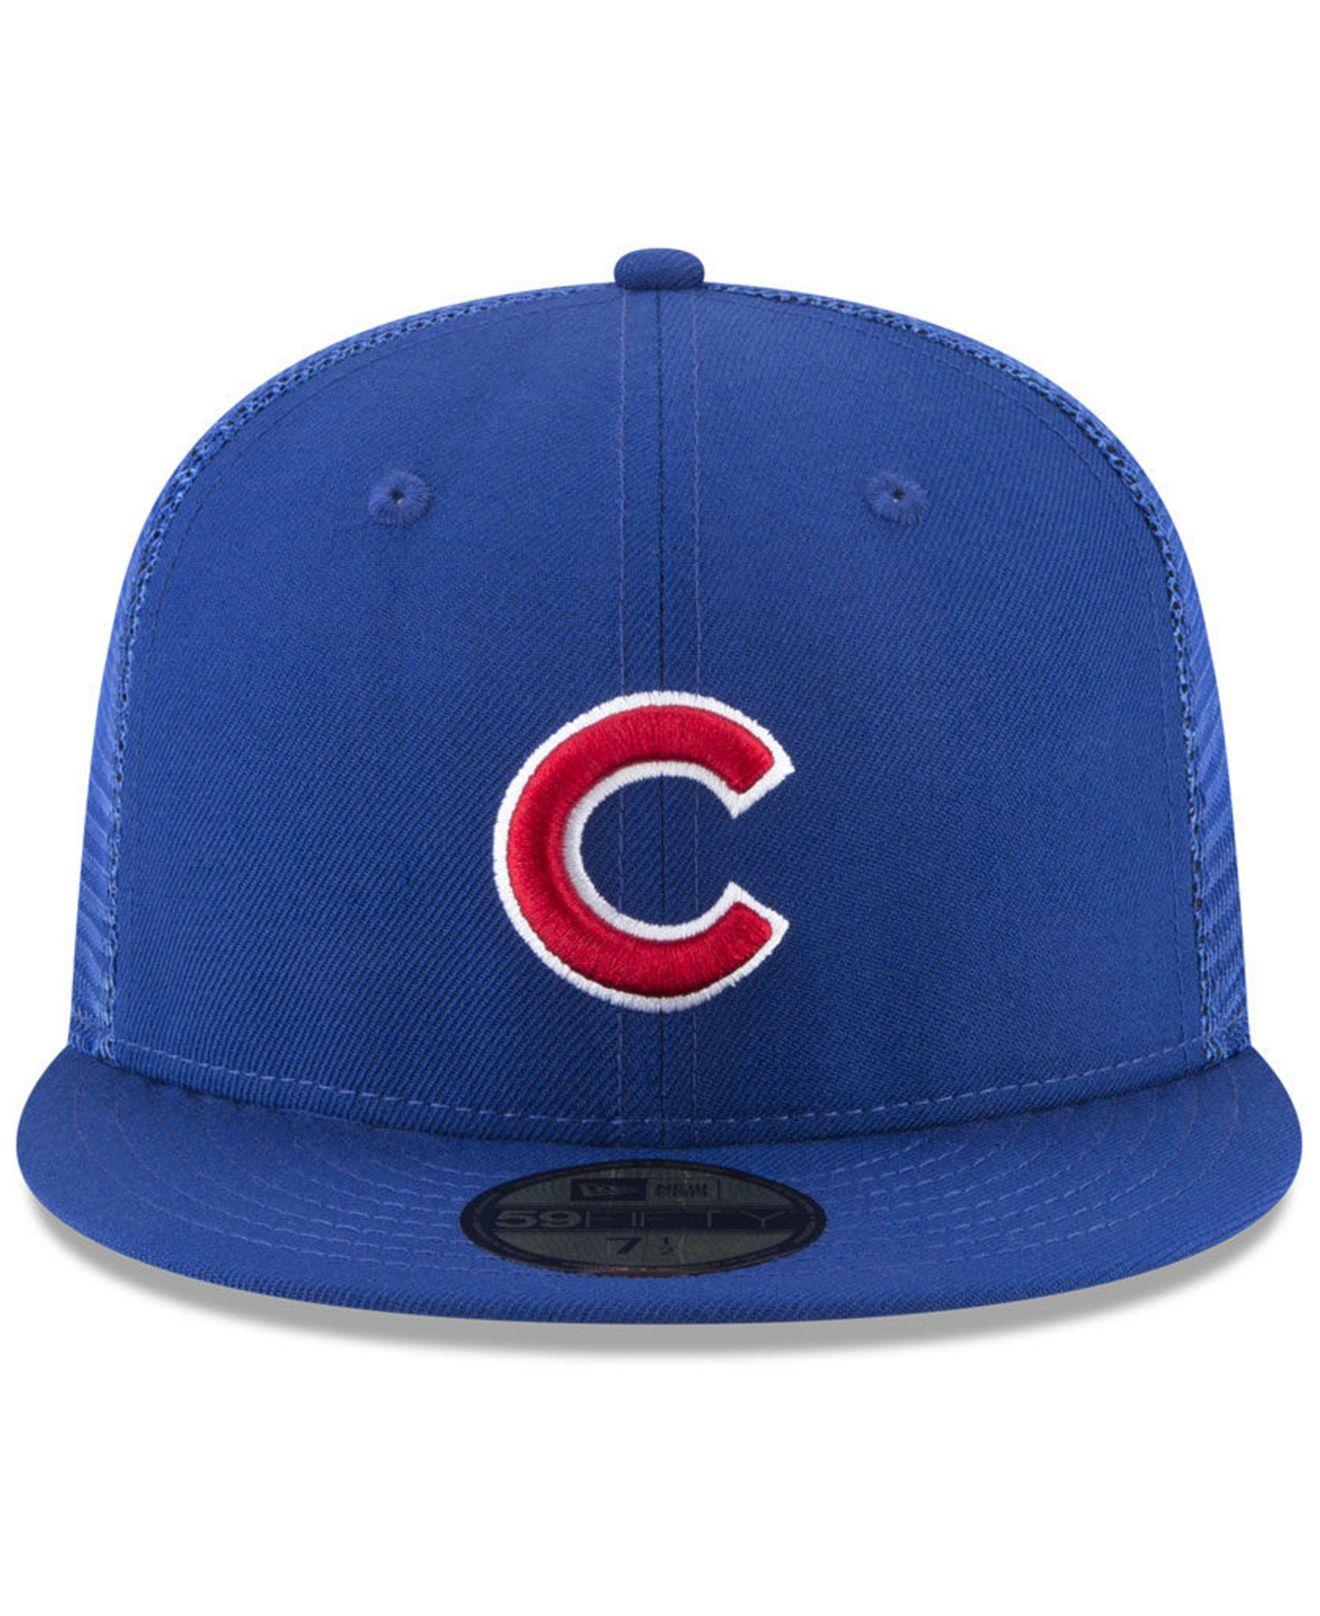 promo code 93f8e 0c870 Lyst - KTZ Chicago Cubs On-field Mesh Back 59fifty Fitted Cap in Blue for  Men